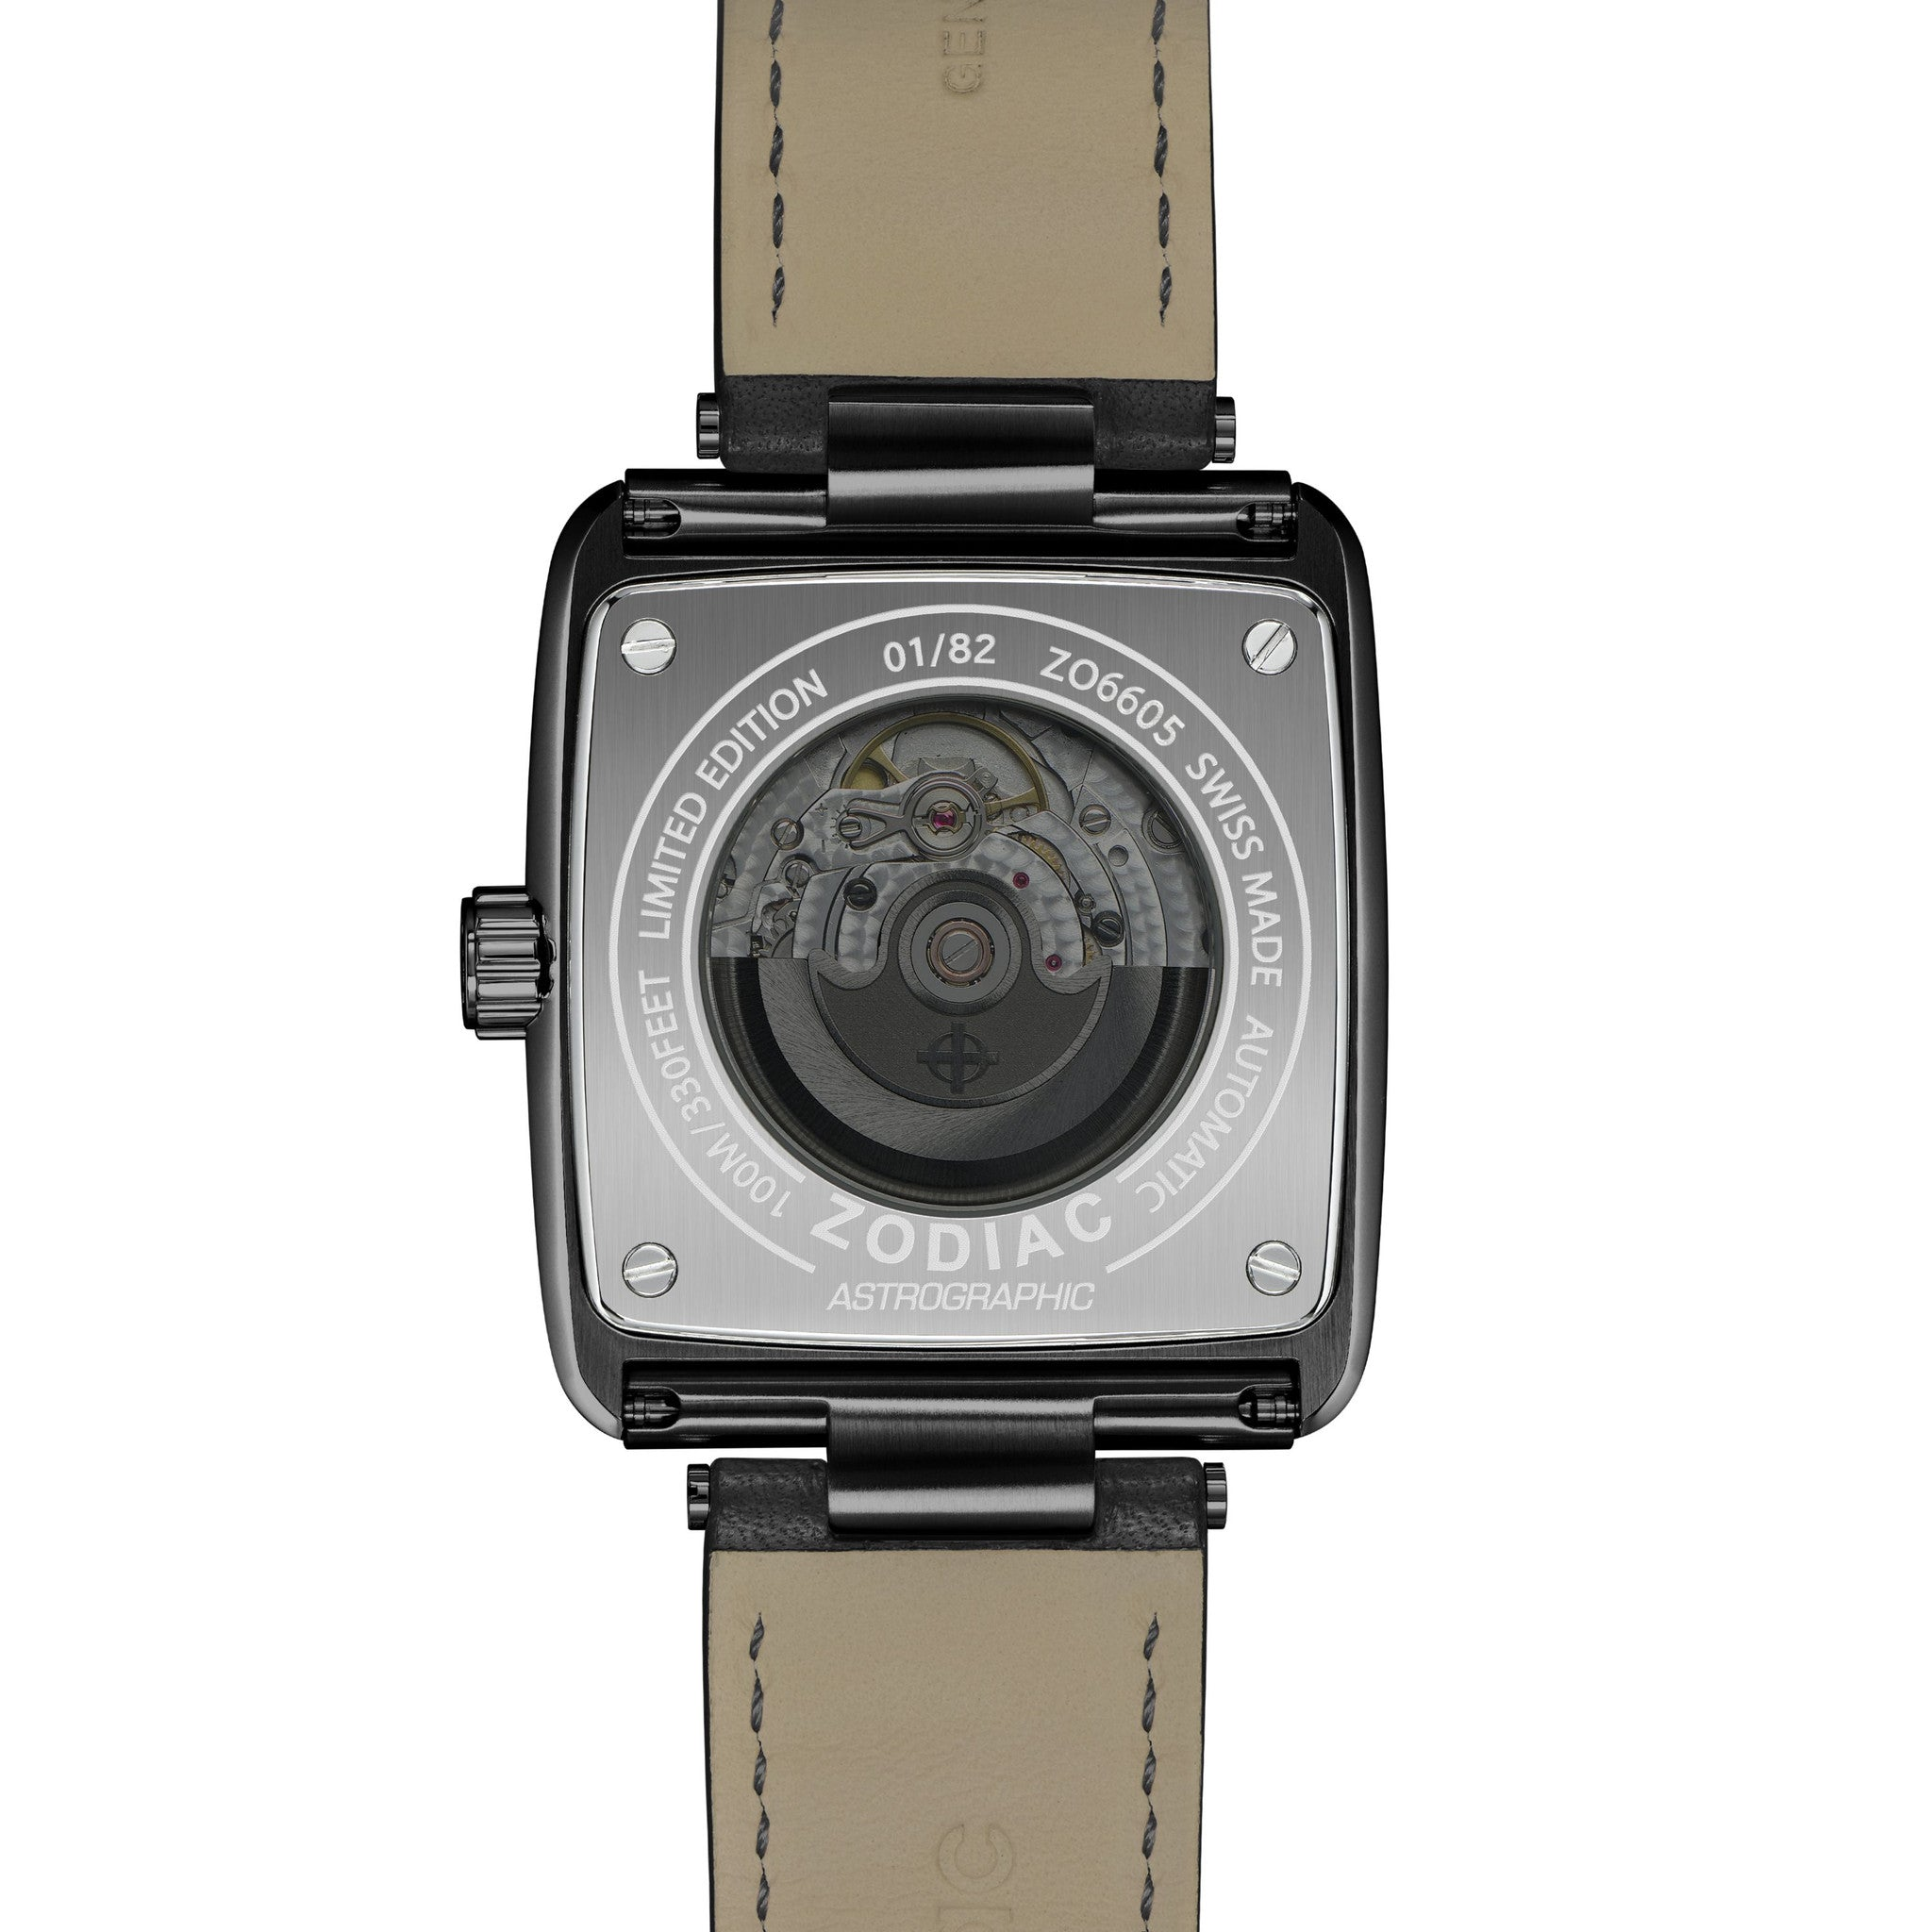 fossil atm 10 watch instructions